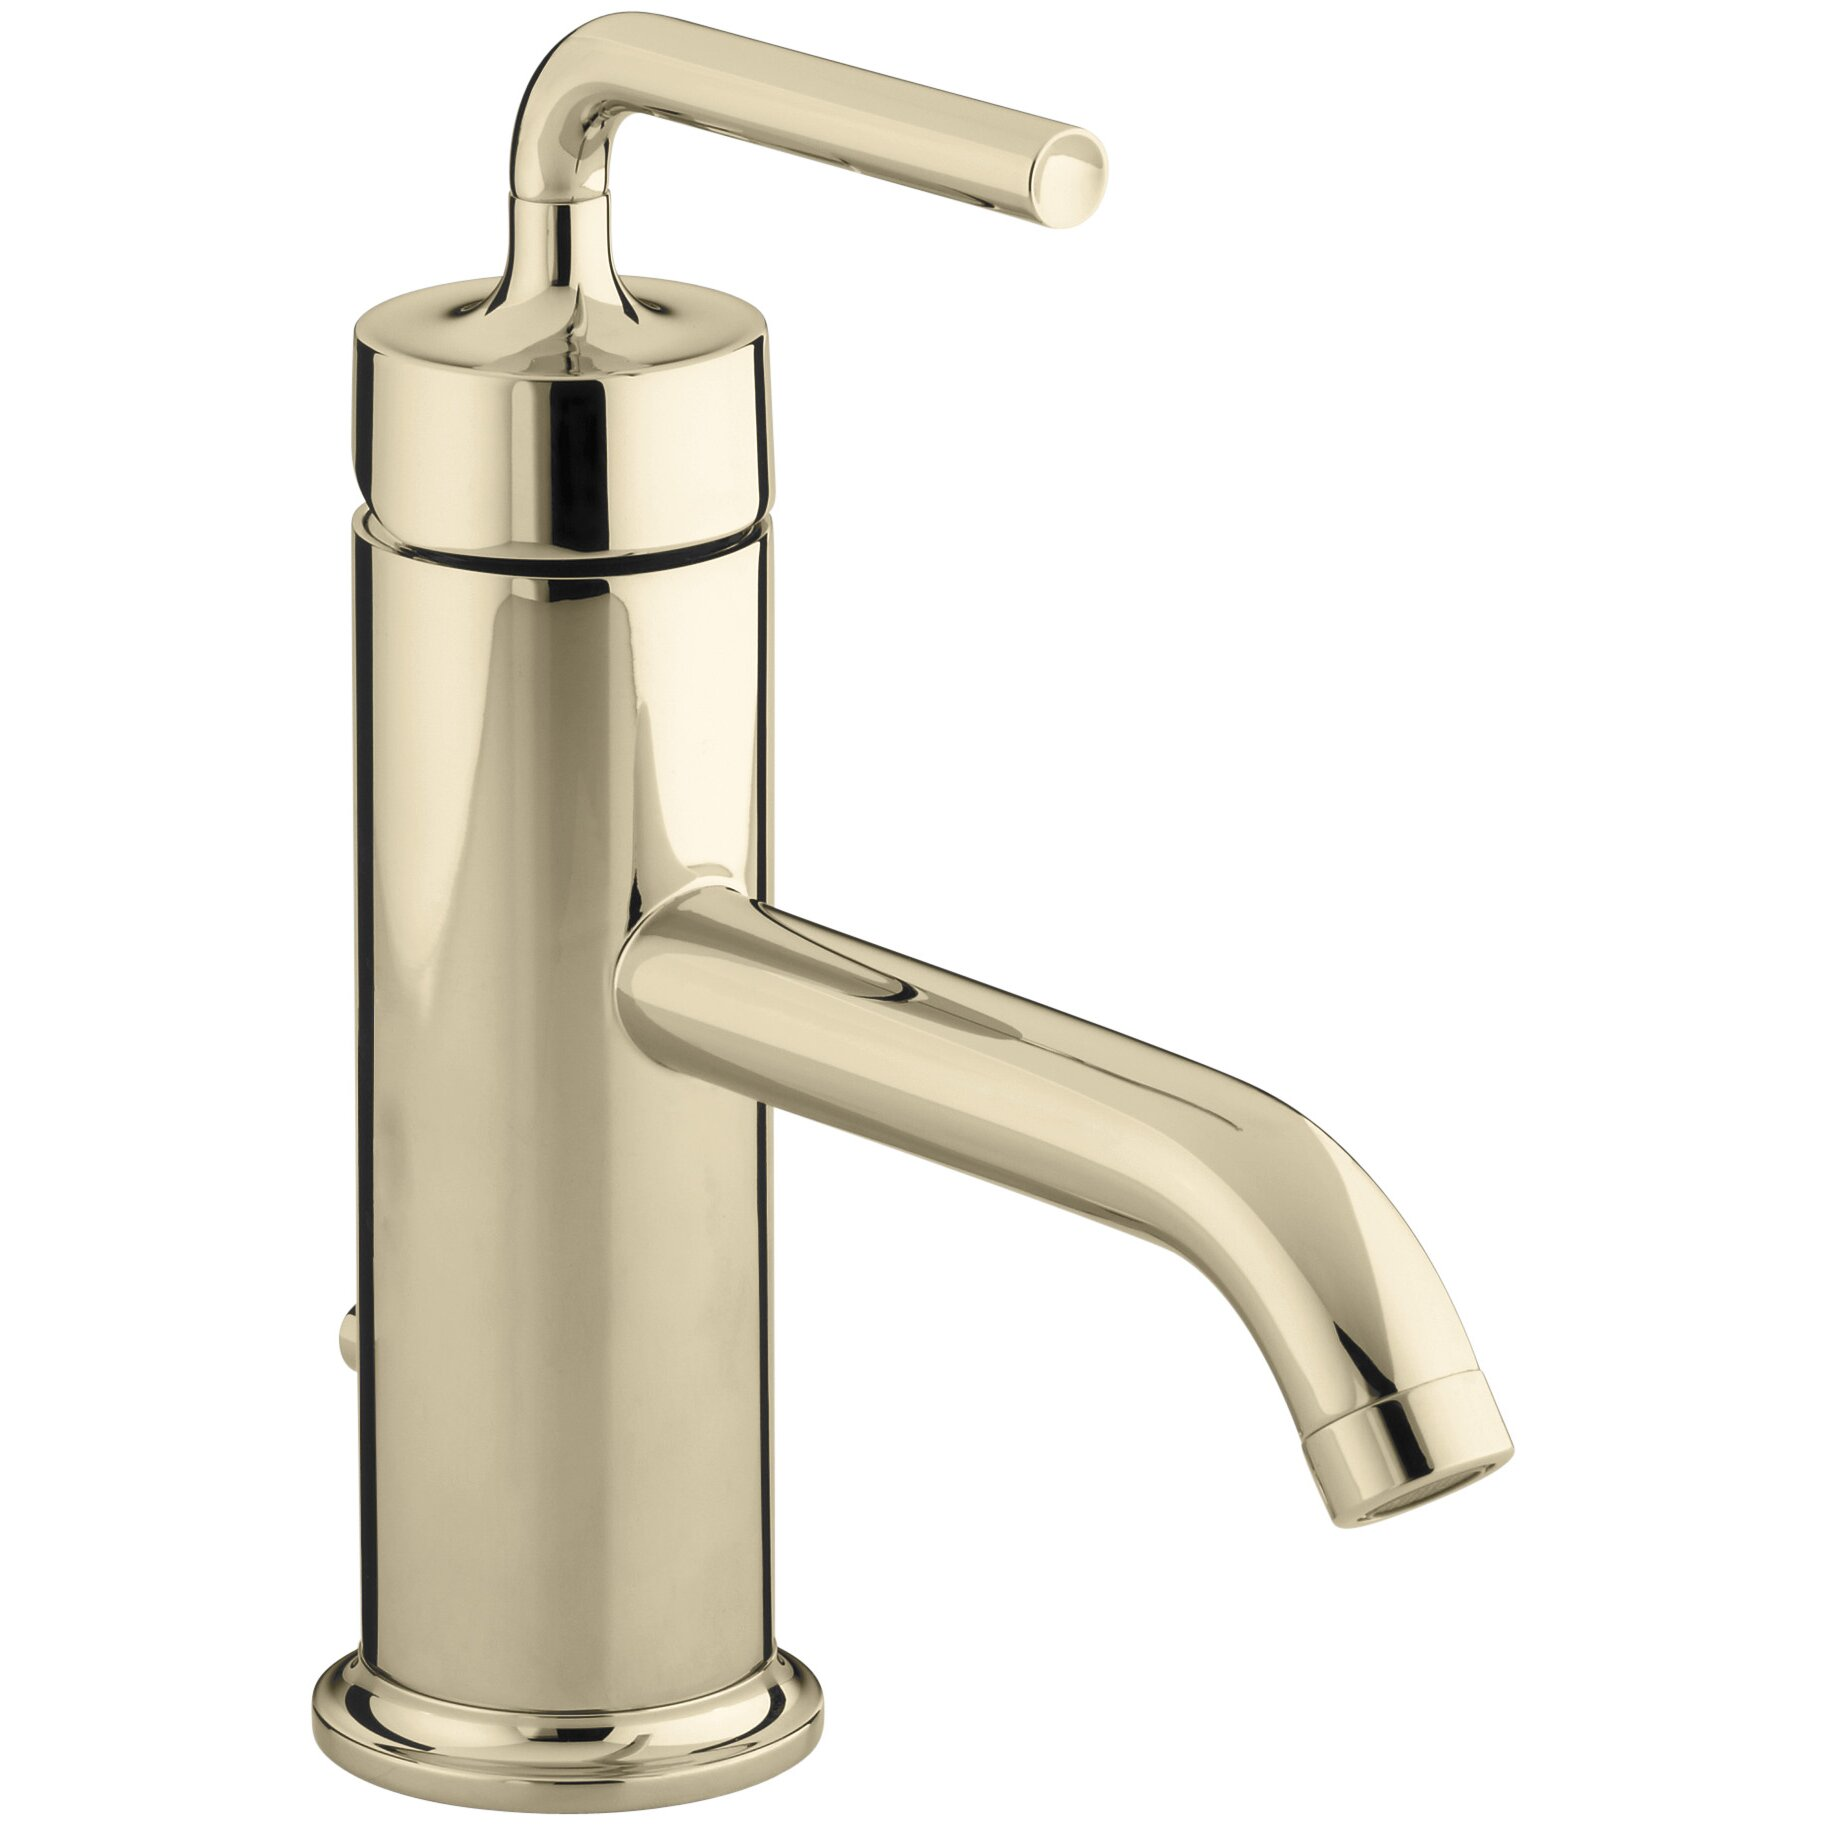 Kohler Purist Single-Hole Bathroom Sink Faucet with Straight Lever ...